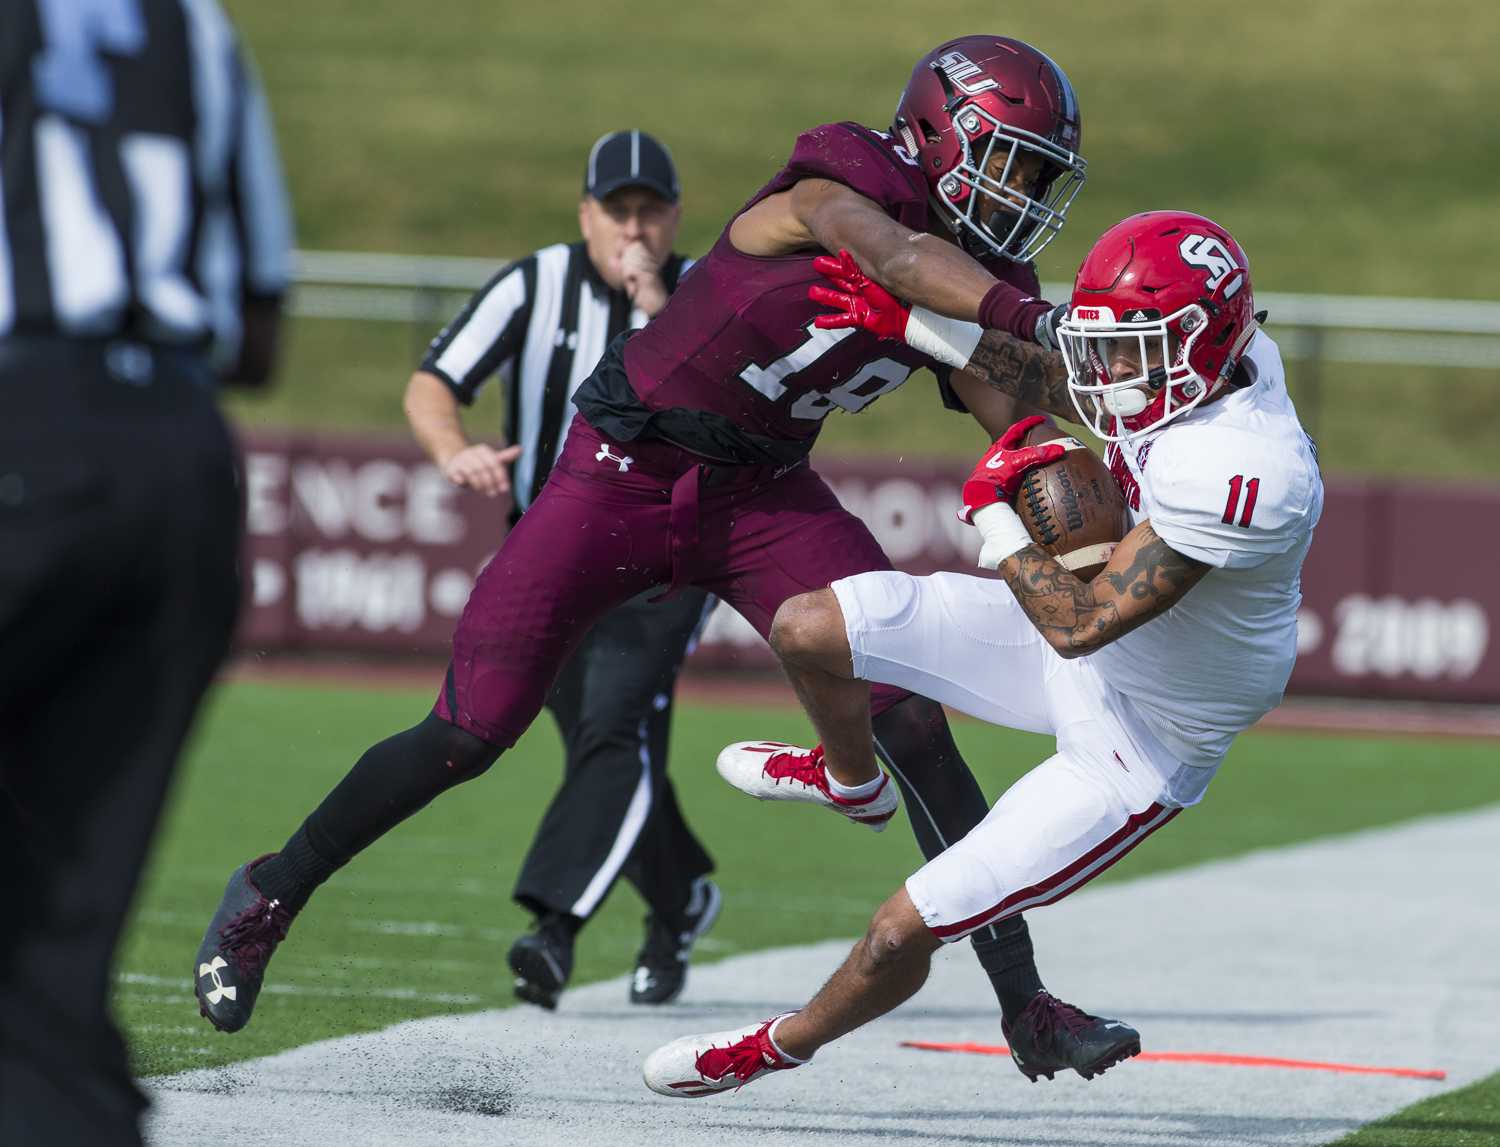 Freshman safety Jeremy Chinn (18) forces South Dakota freshman wide receiver Randy Baker out of bounds Saturday, Nov. 5, 2016, during the Salukis' 35-28 win over the University of South Dakota Coyotes at Saluki Stadium. (Ryan Michalesko | @photosbylesko)